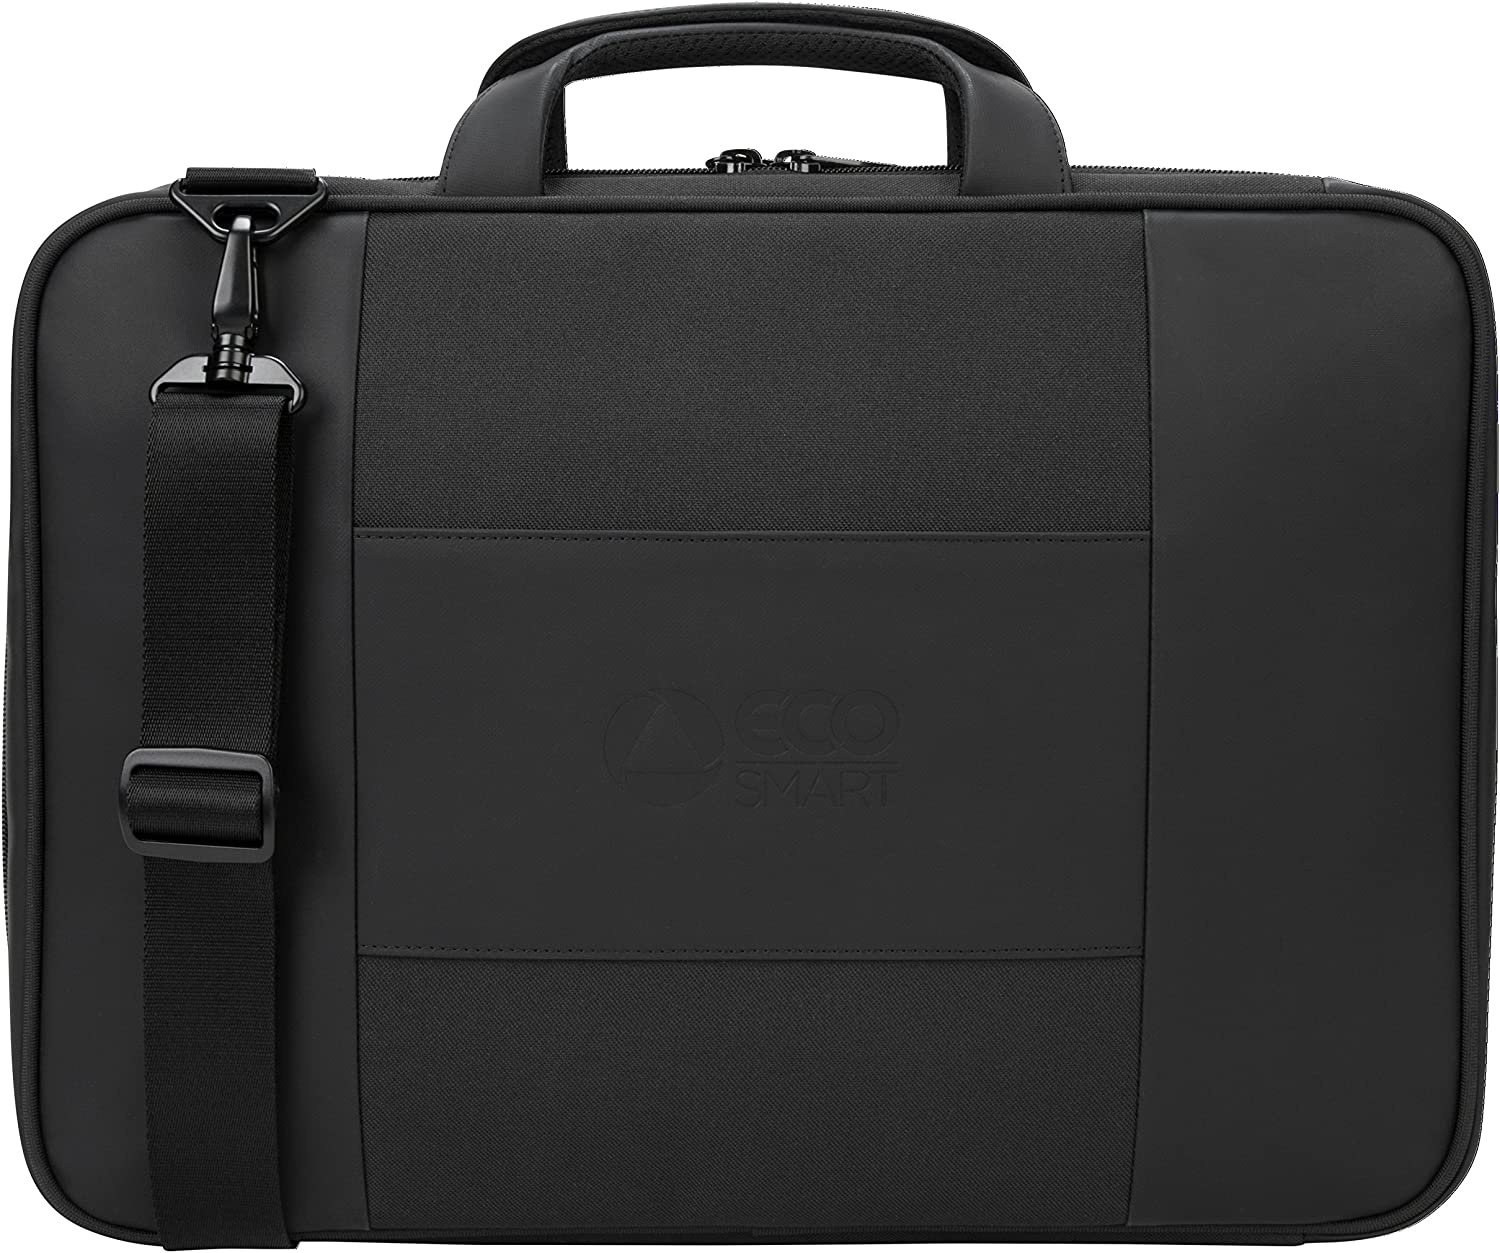 Targus Balance EcoSmart Briefcase Made from Recycled Weather Resistant & PVC-Free Material for Professional Commuter, Checkpoint-Friendly, Suspension Protection fits 15.6-Inch Laptop, Black (TBT918US)